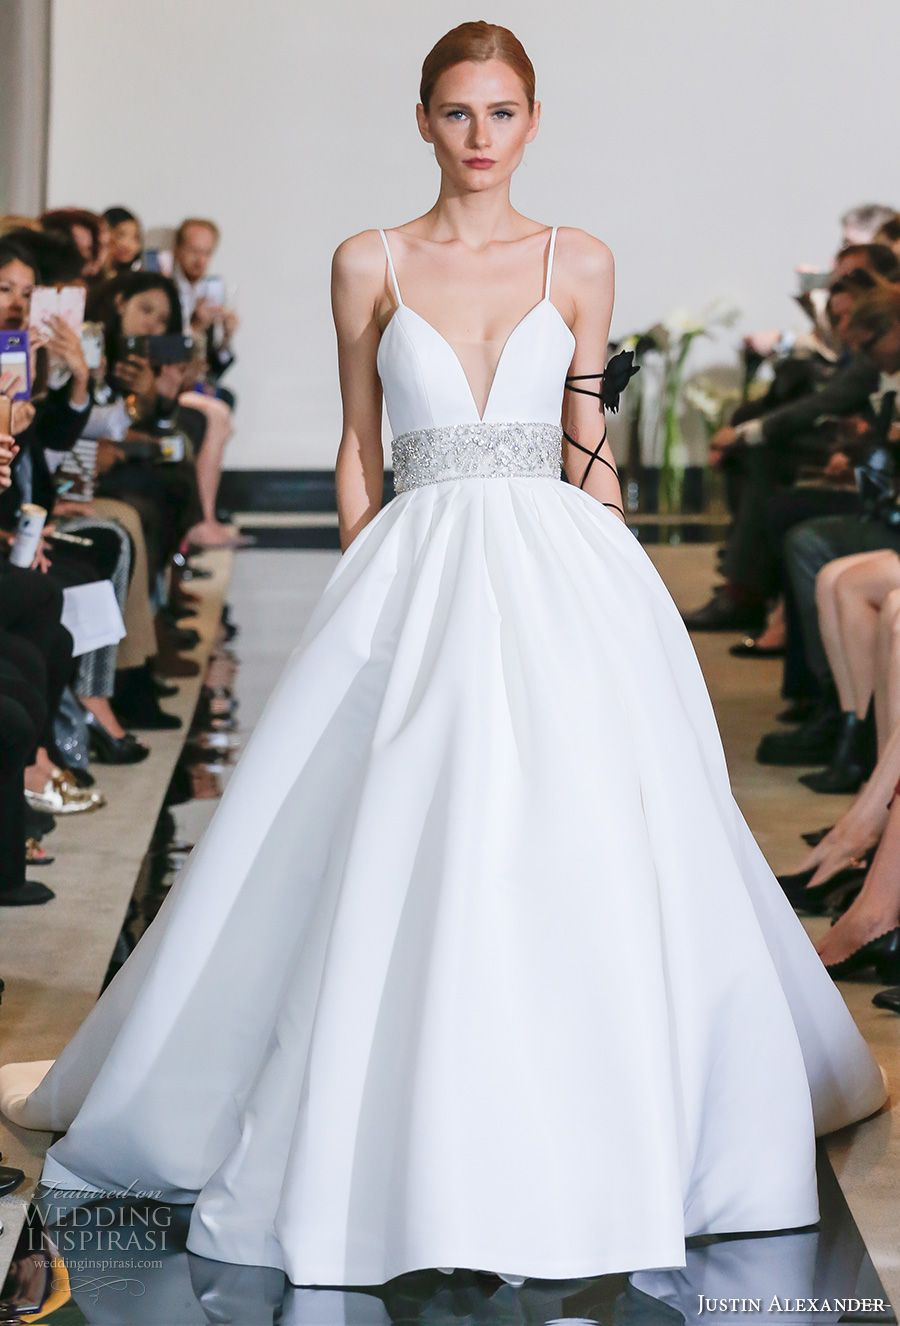 6001d03602a1 justin alexander spring 2018 bridal spagetti strap deep plunging sweetheart  neckline simple clean embellished belt ball gown wedding dress chapel train  (06) ...